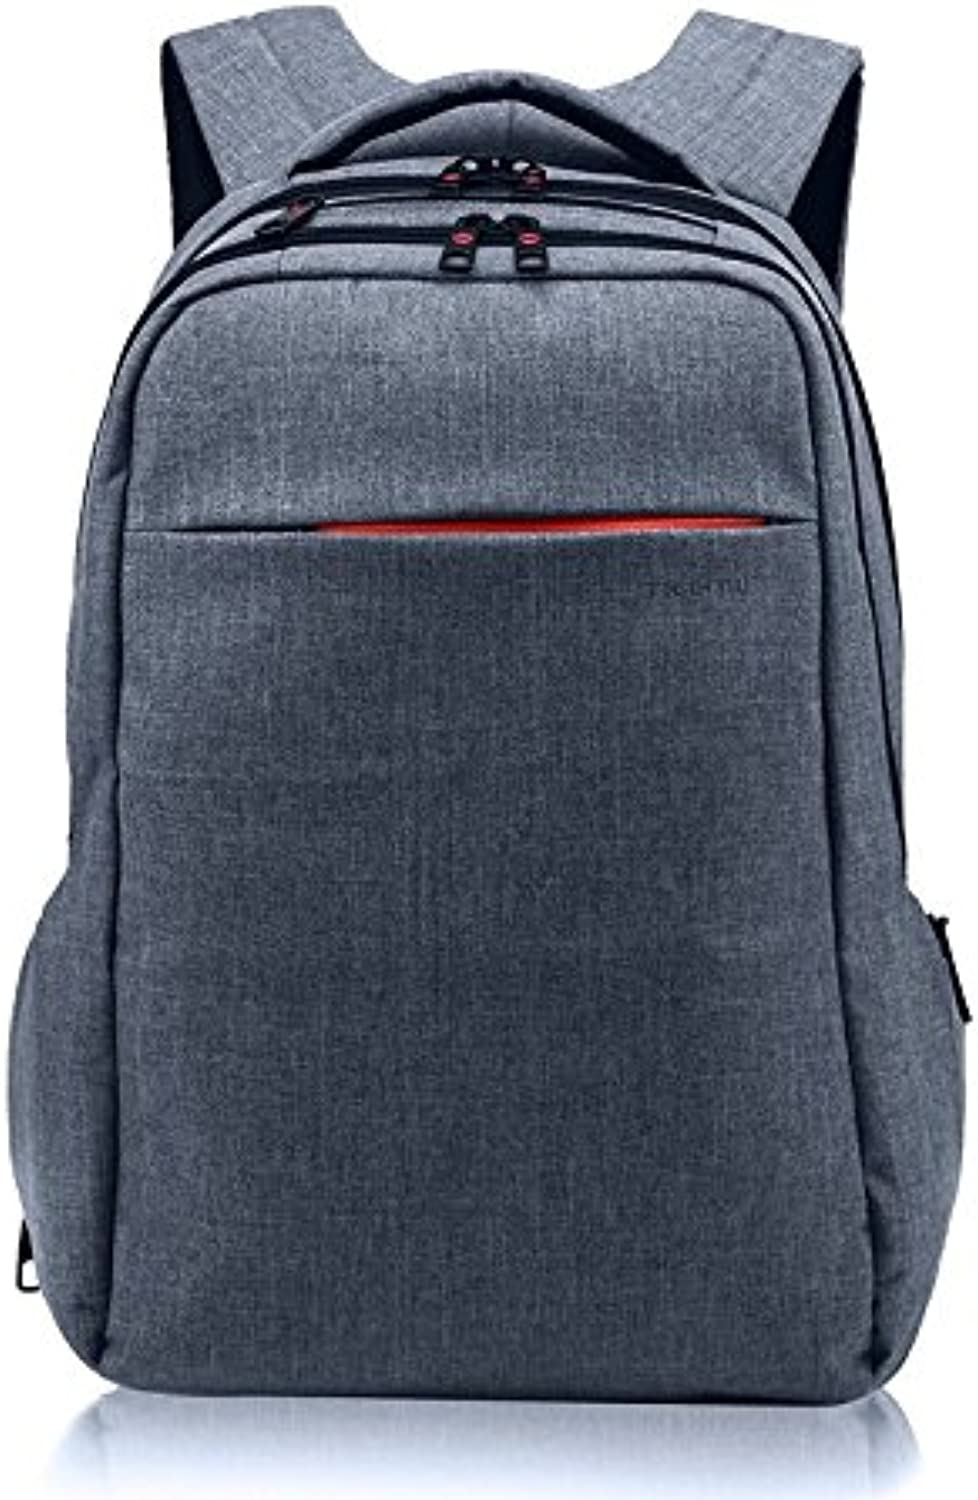 Easy Clean Large Capacity Backpack,Lightweight Waterproof Mens Slim Business Backpack Laptop Backpacks for Laptop(Grey bluee)